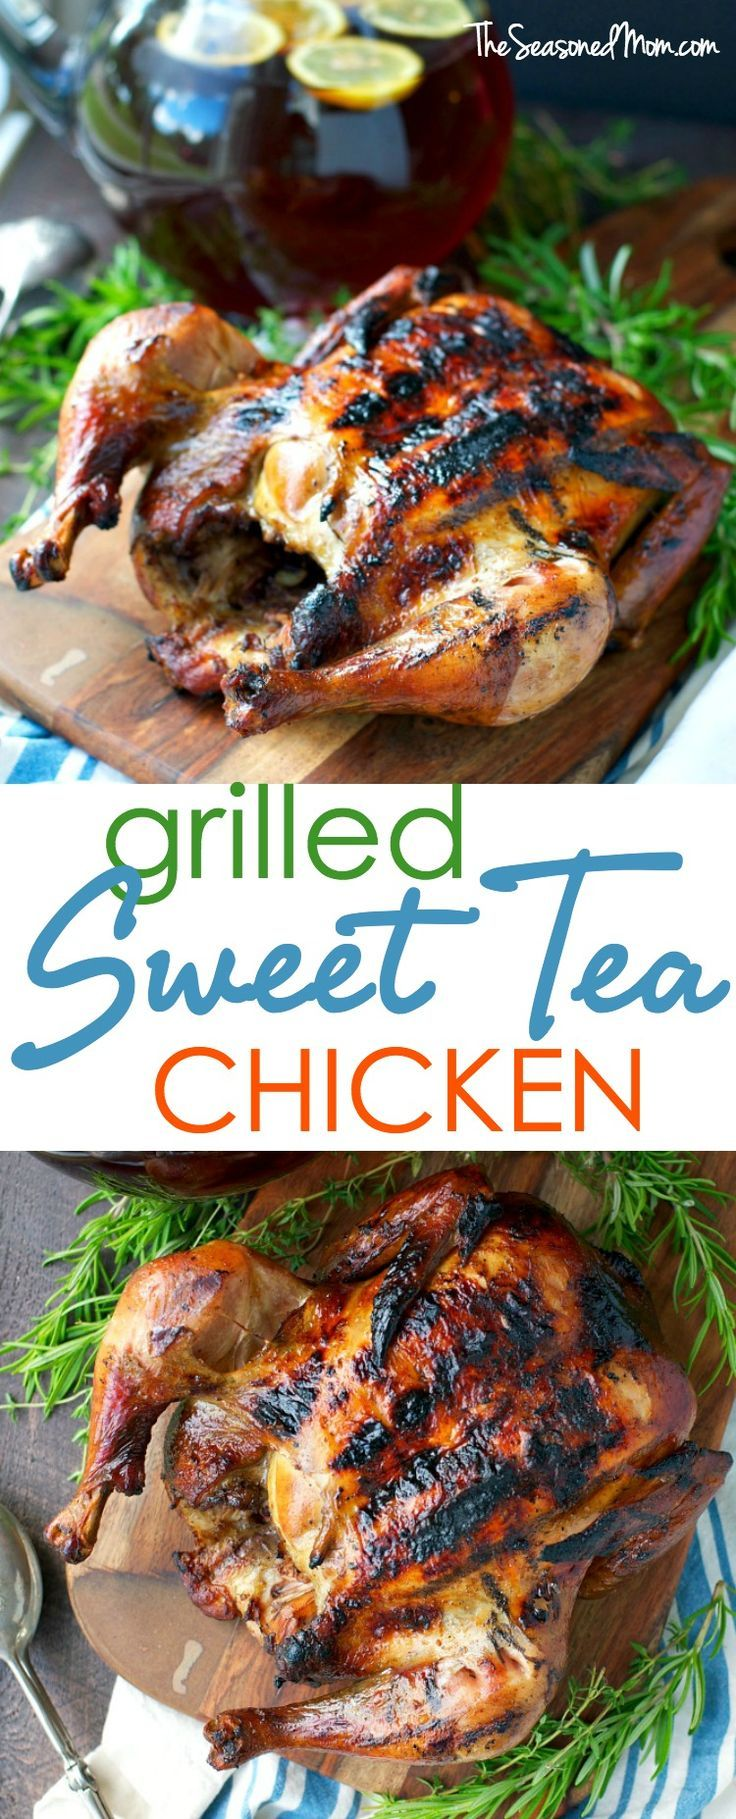 Grilled Sweet Tea Chicken is an easy Southern dinner to throw on the grill for your next cookout! #BrightBites #ad